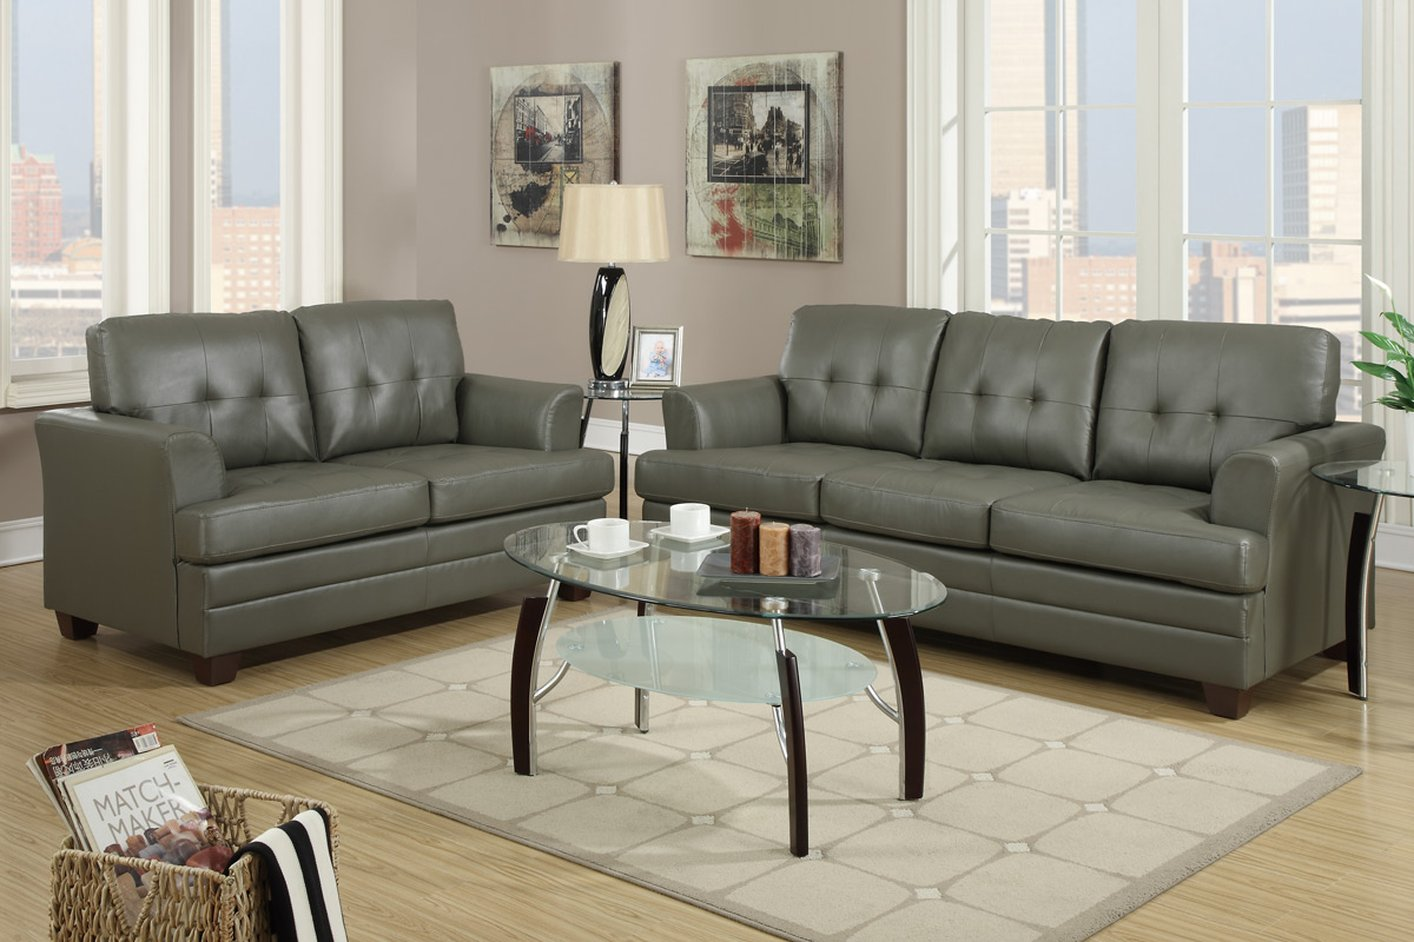 Poundex F7774 Grey Leather Sofa And Loveseat Set Steal A Sofa Furniture Outlet Los Angeles Ca